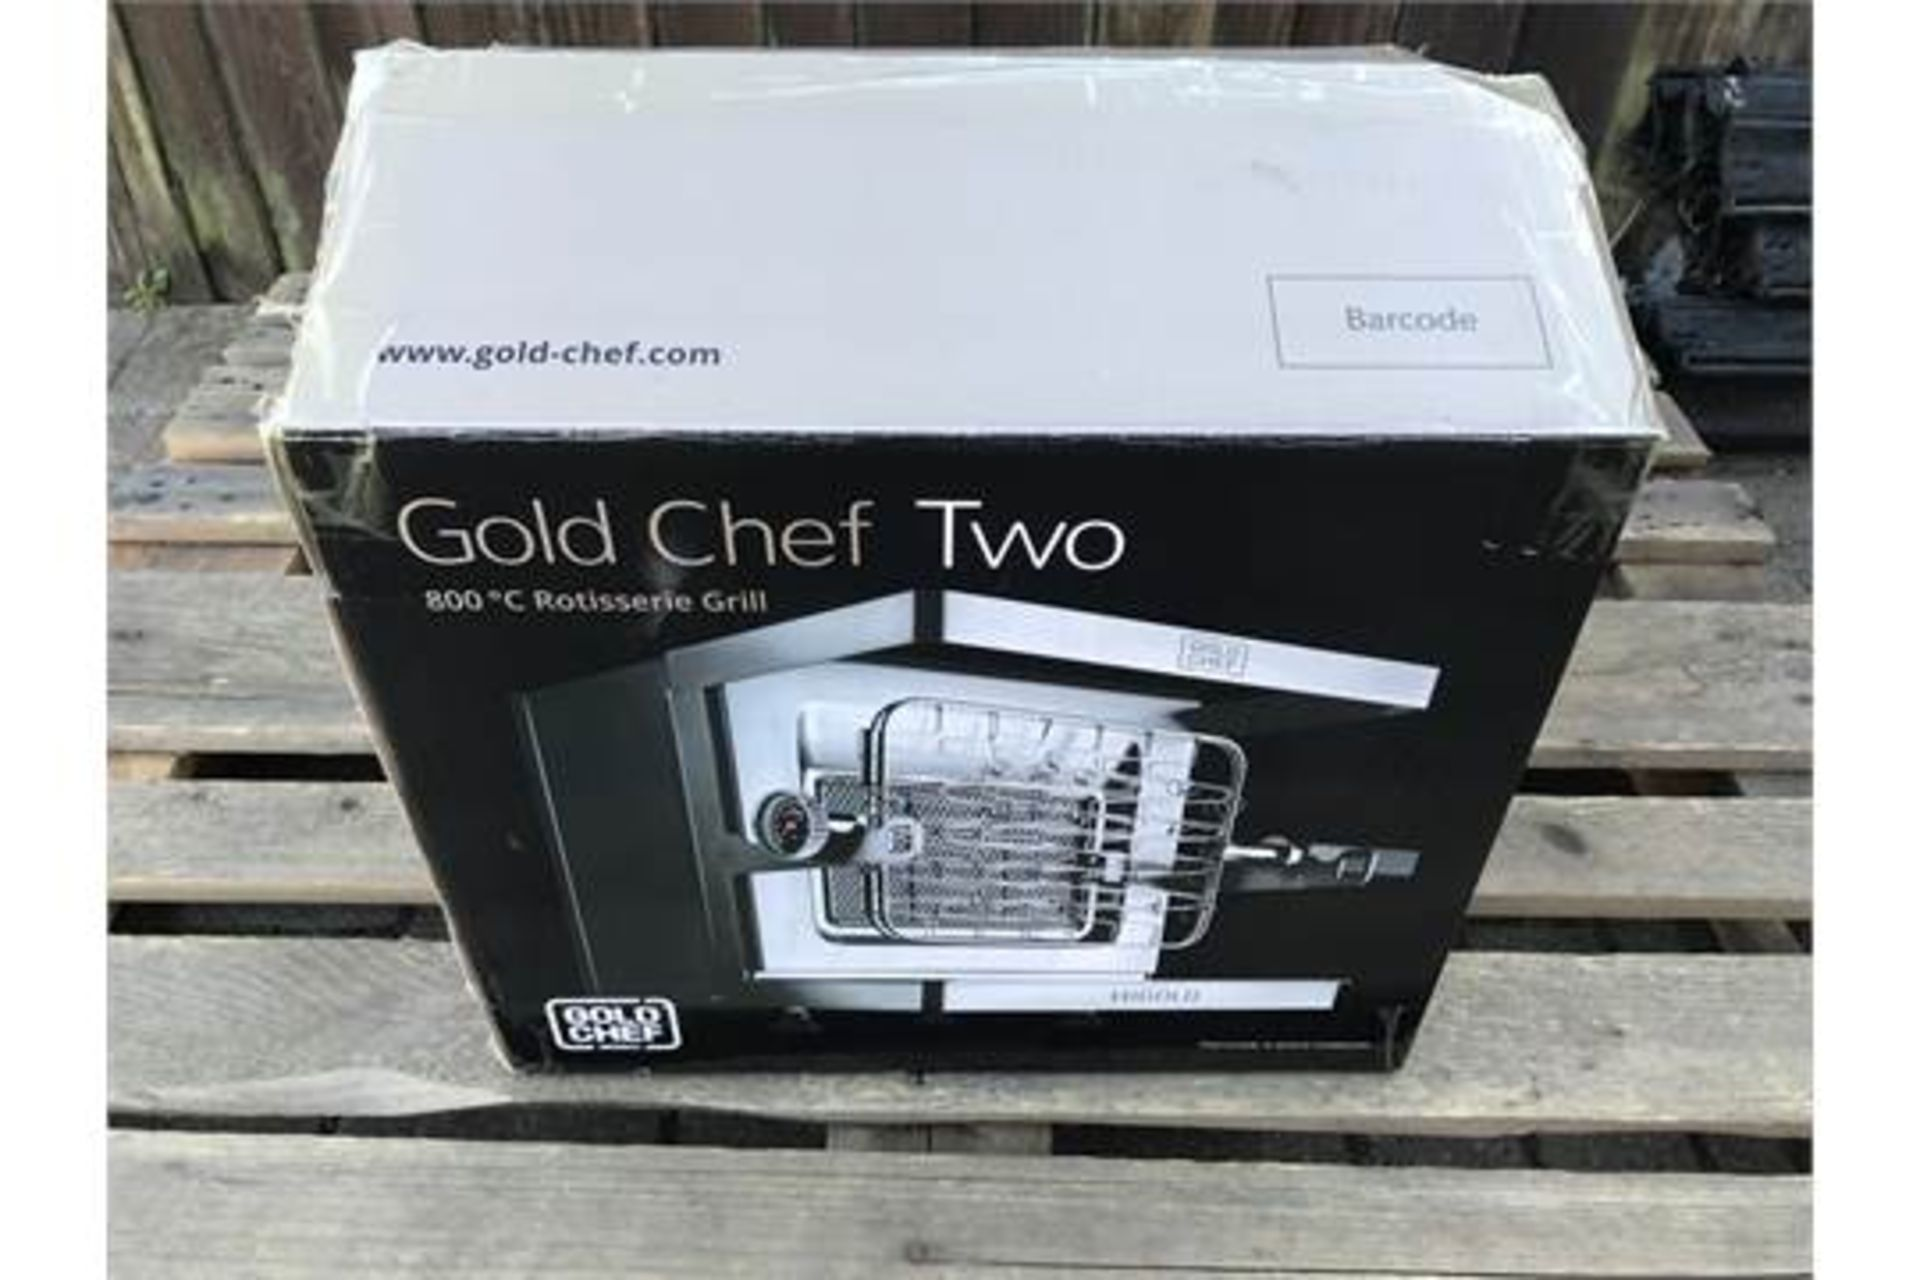 GOLD CHEF TWO 800C ROTISSERIE GRILL **BRAND NEW** - Image 5 of 5